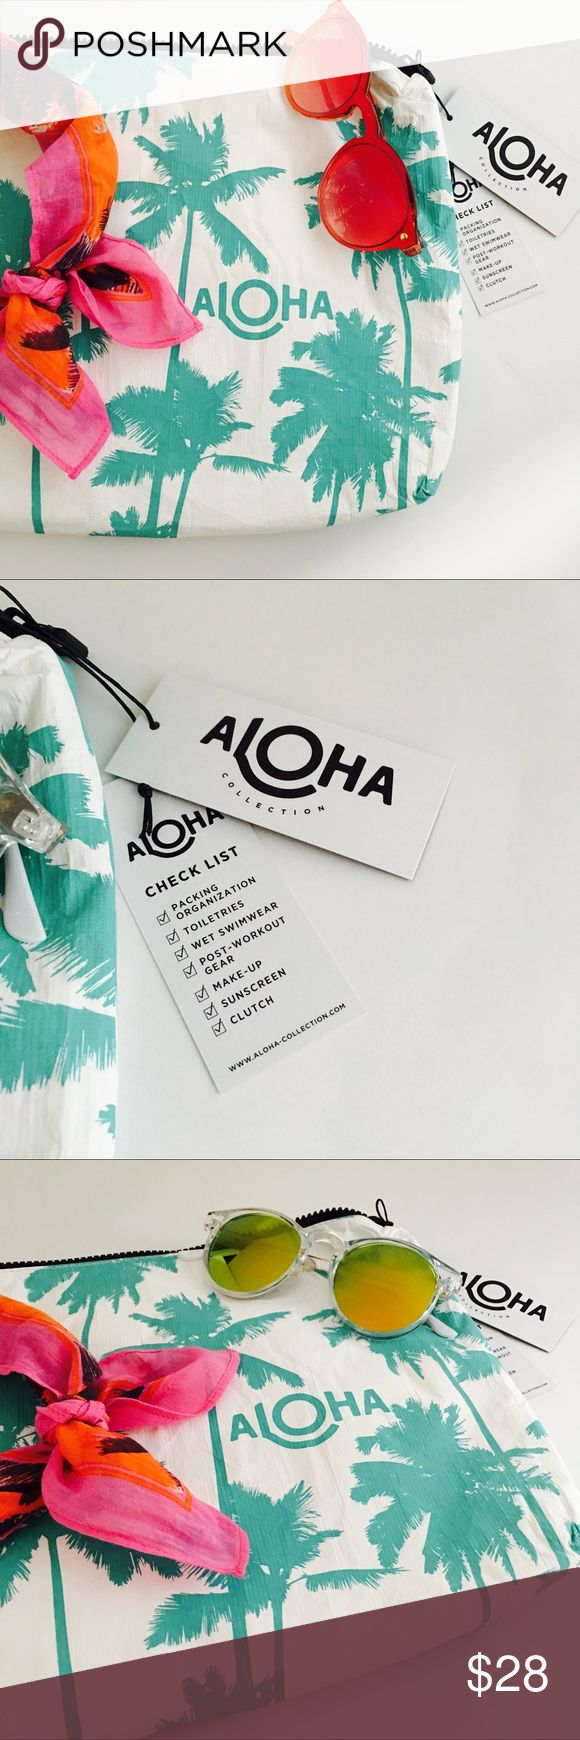 "ALOHA Collection Mid-Size Pouch Splash Proof Tyvek Take a little Kauai with you on your next adventure! This print was inspired by Kauai's coco palms and the famous Coco Palms Resort.   This pouch is perfect to use as a beach clutch.  Stow your sunscreen, sarong, and bikini, or pack toiletries for your next trip!  Mid-size pouch measures:  11.5"" across x 2"" wide x 8.5"" tall ALOHA Collection Bags"